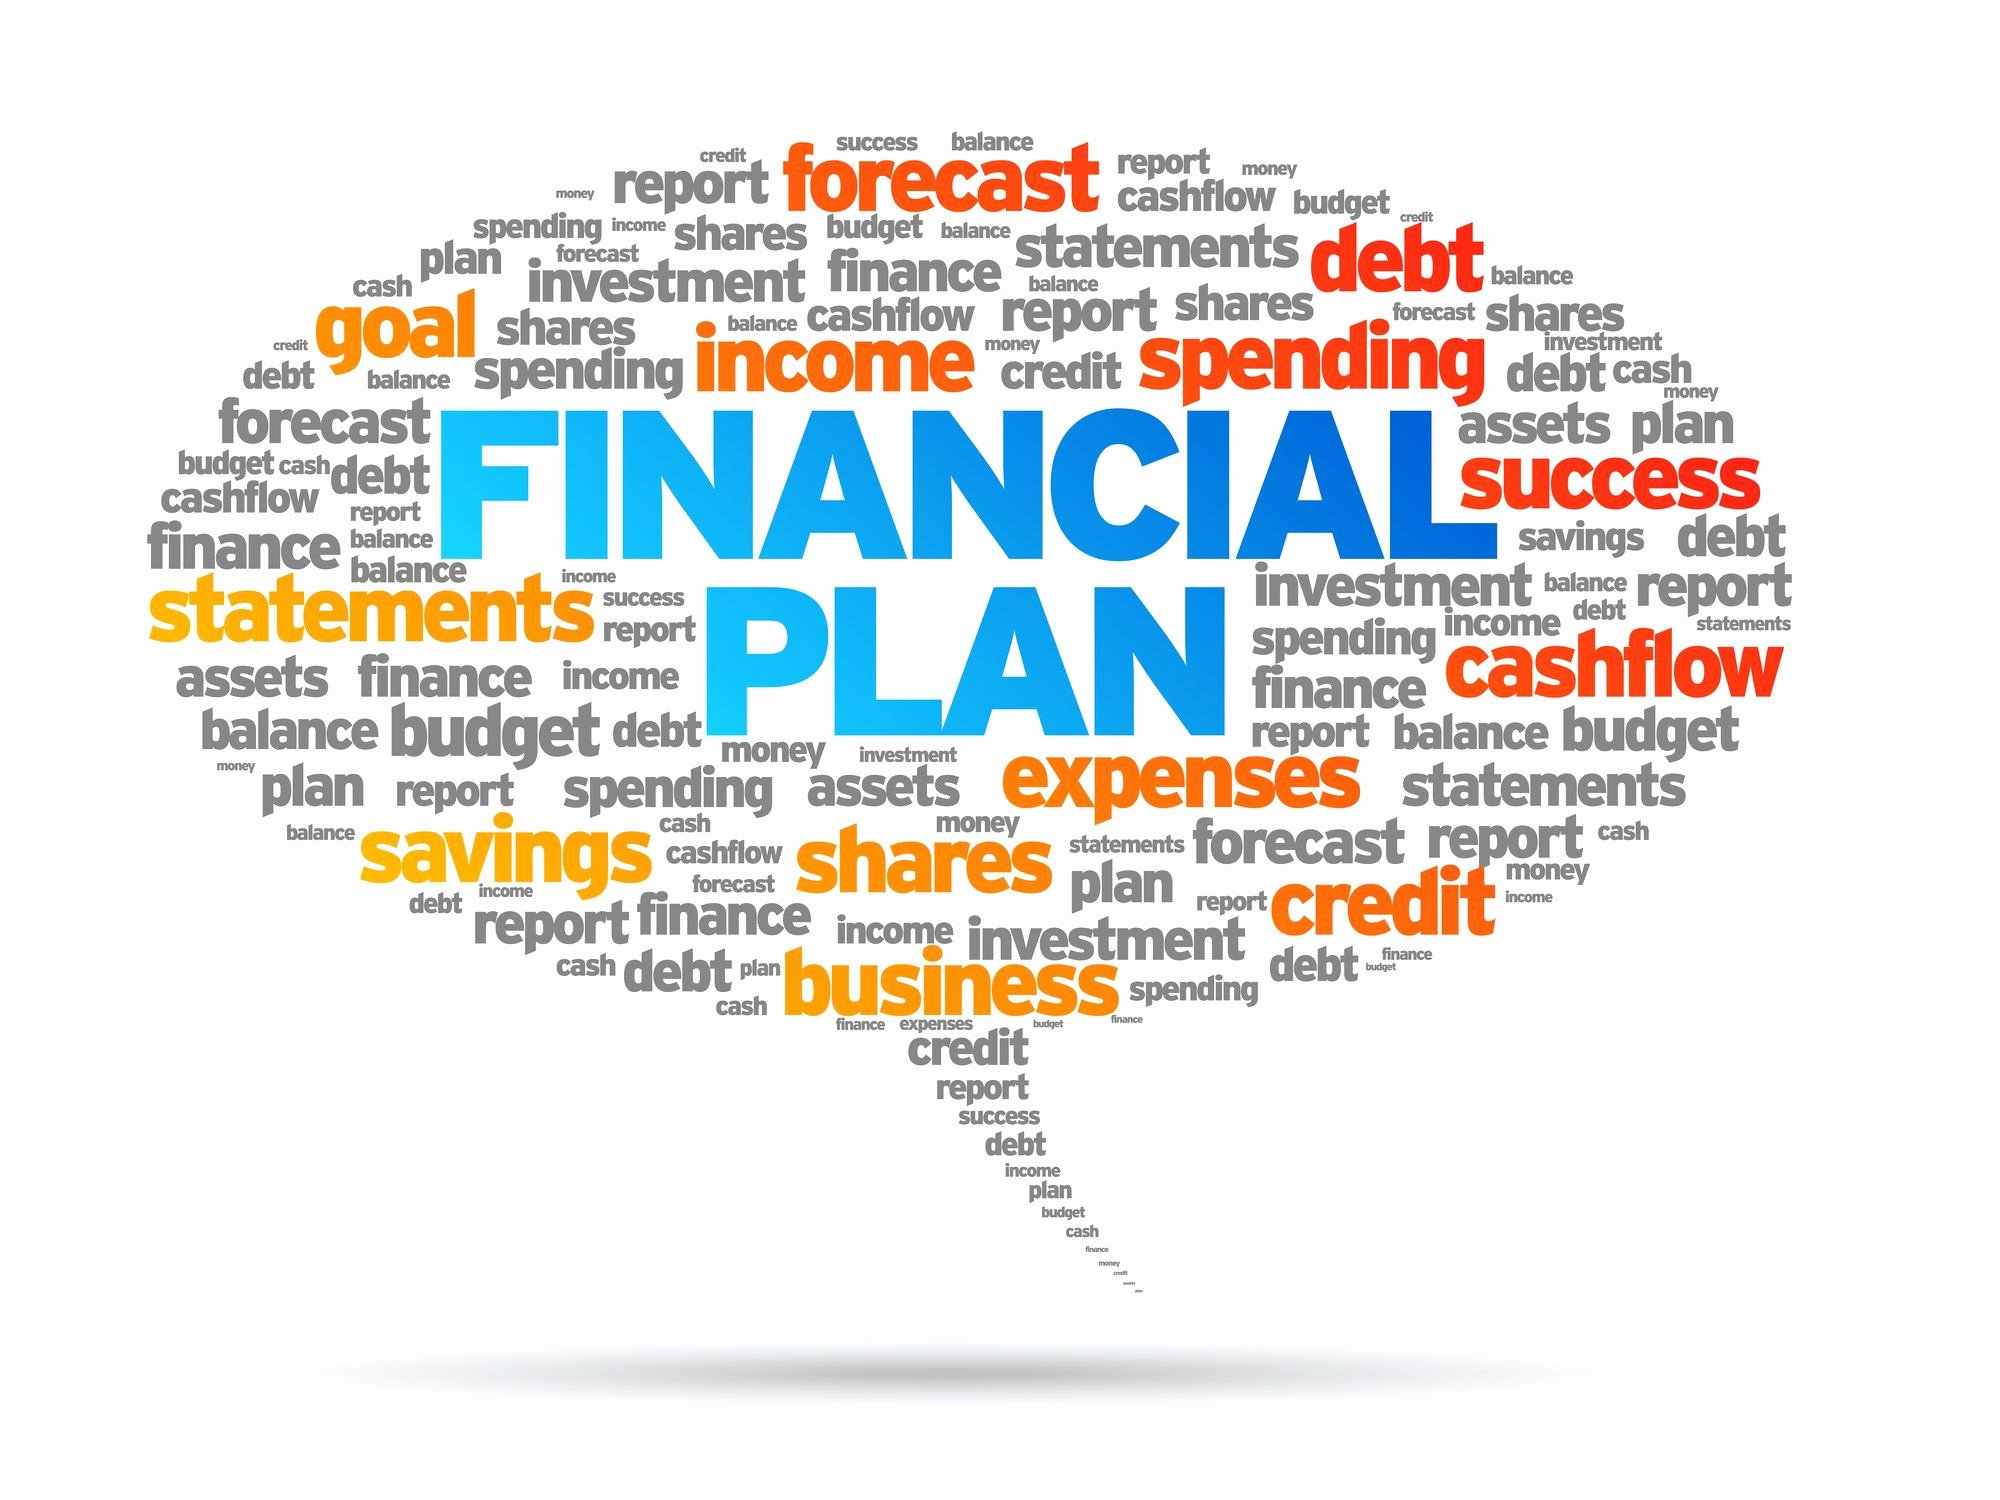 Financial Advisor Business Plan Best Of Financial Planning for Business Line Marketing Digital Marketing